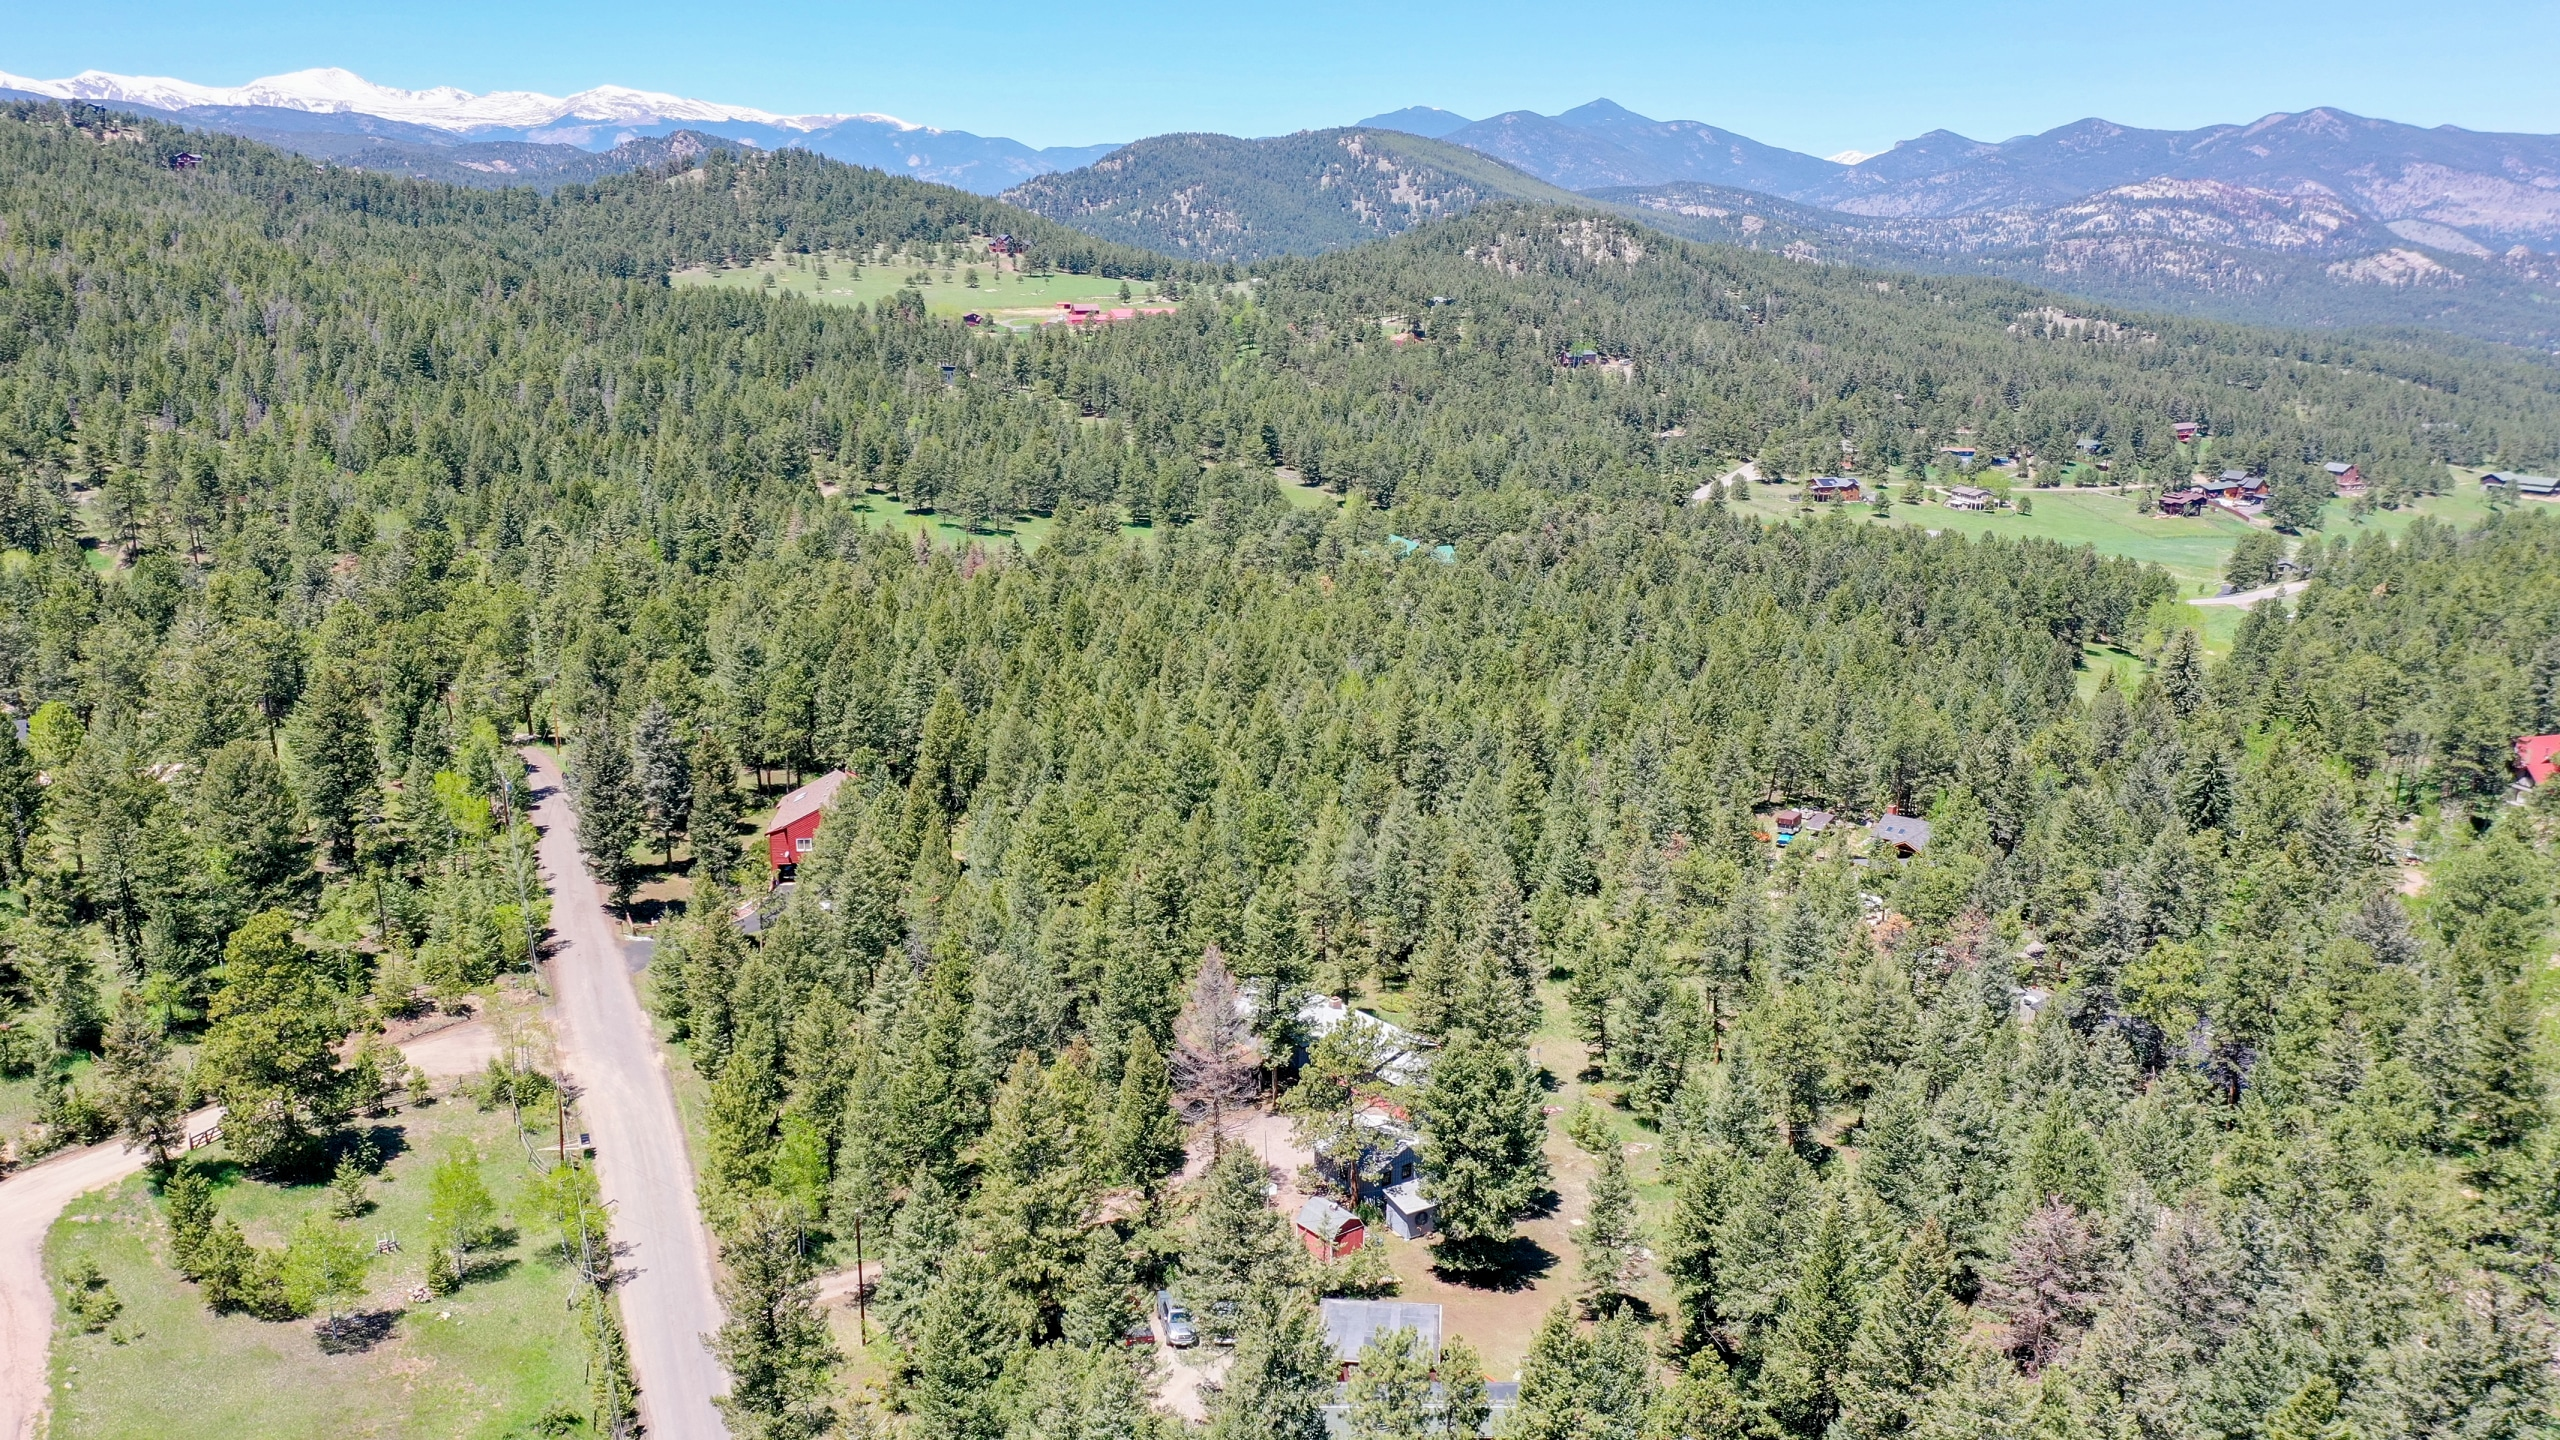 Drone view of Evergreen forest in Colorado